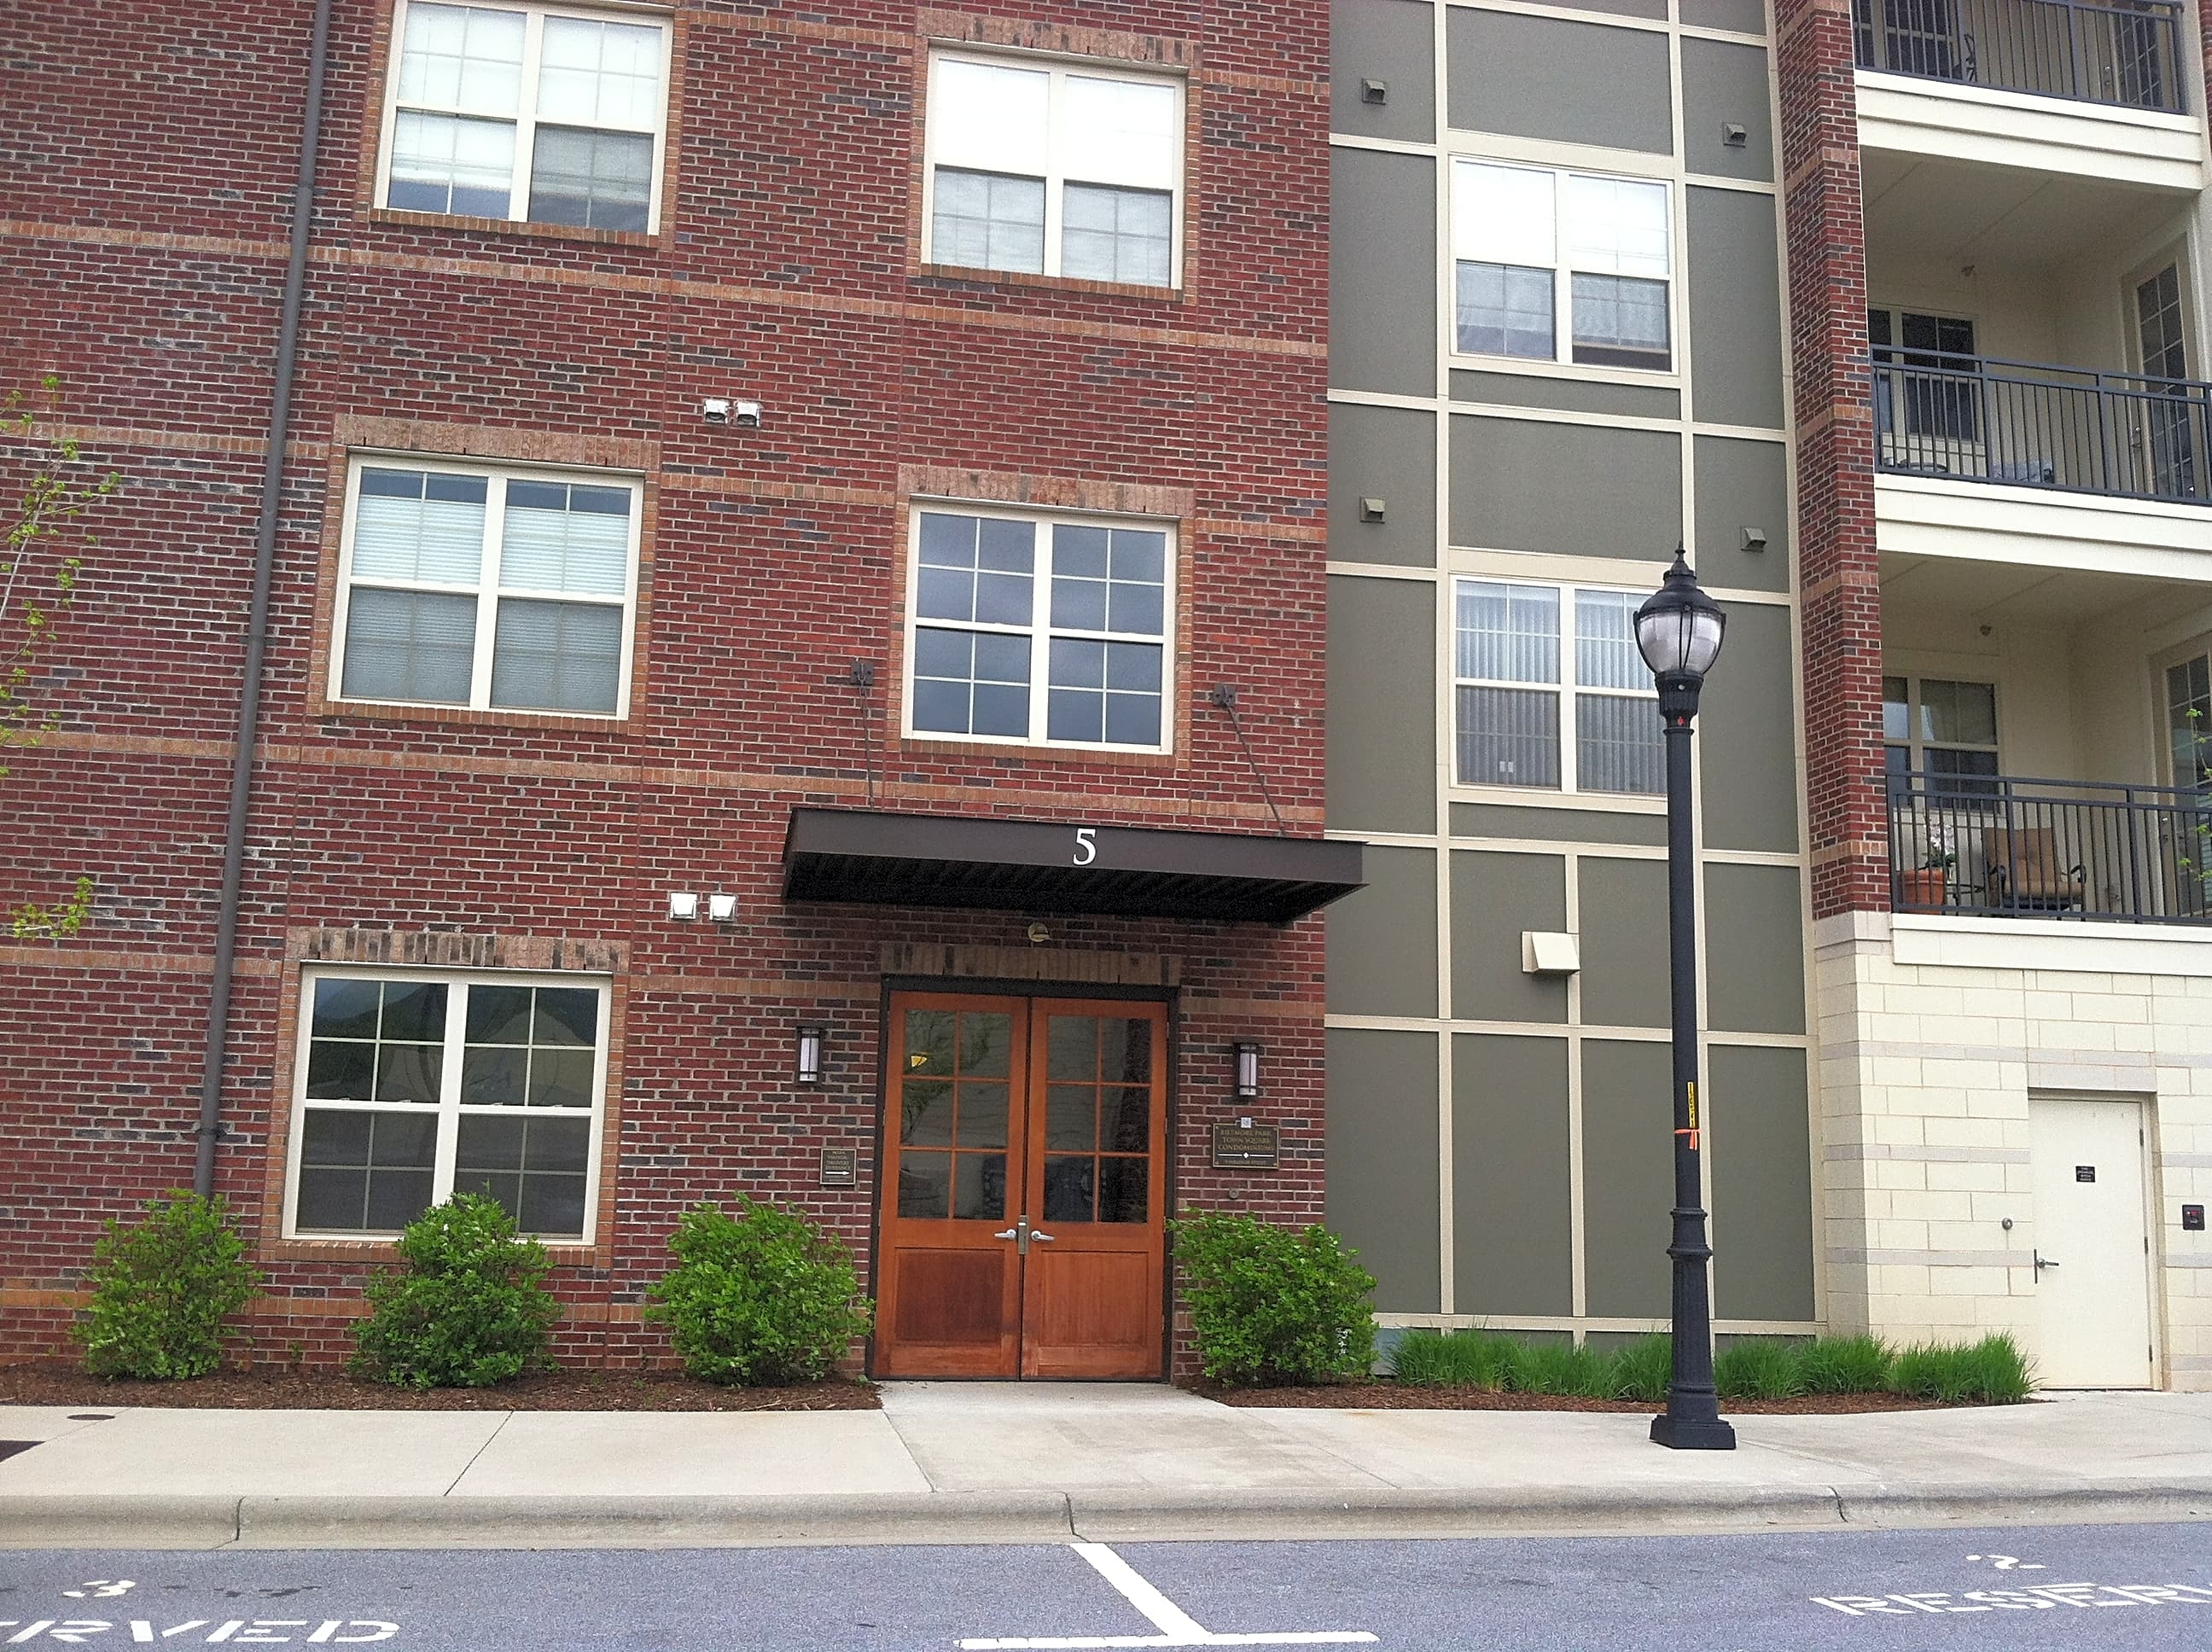 Condo for Rent in Asheville